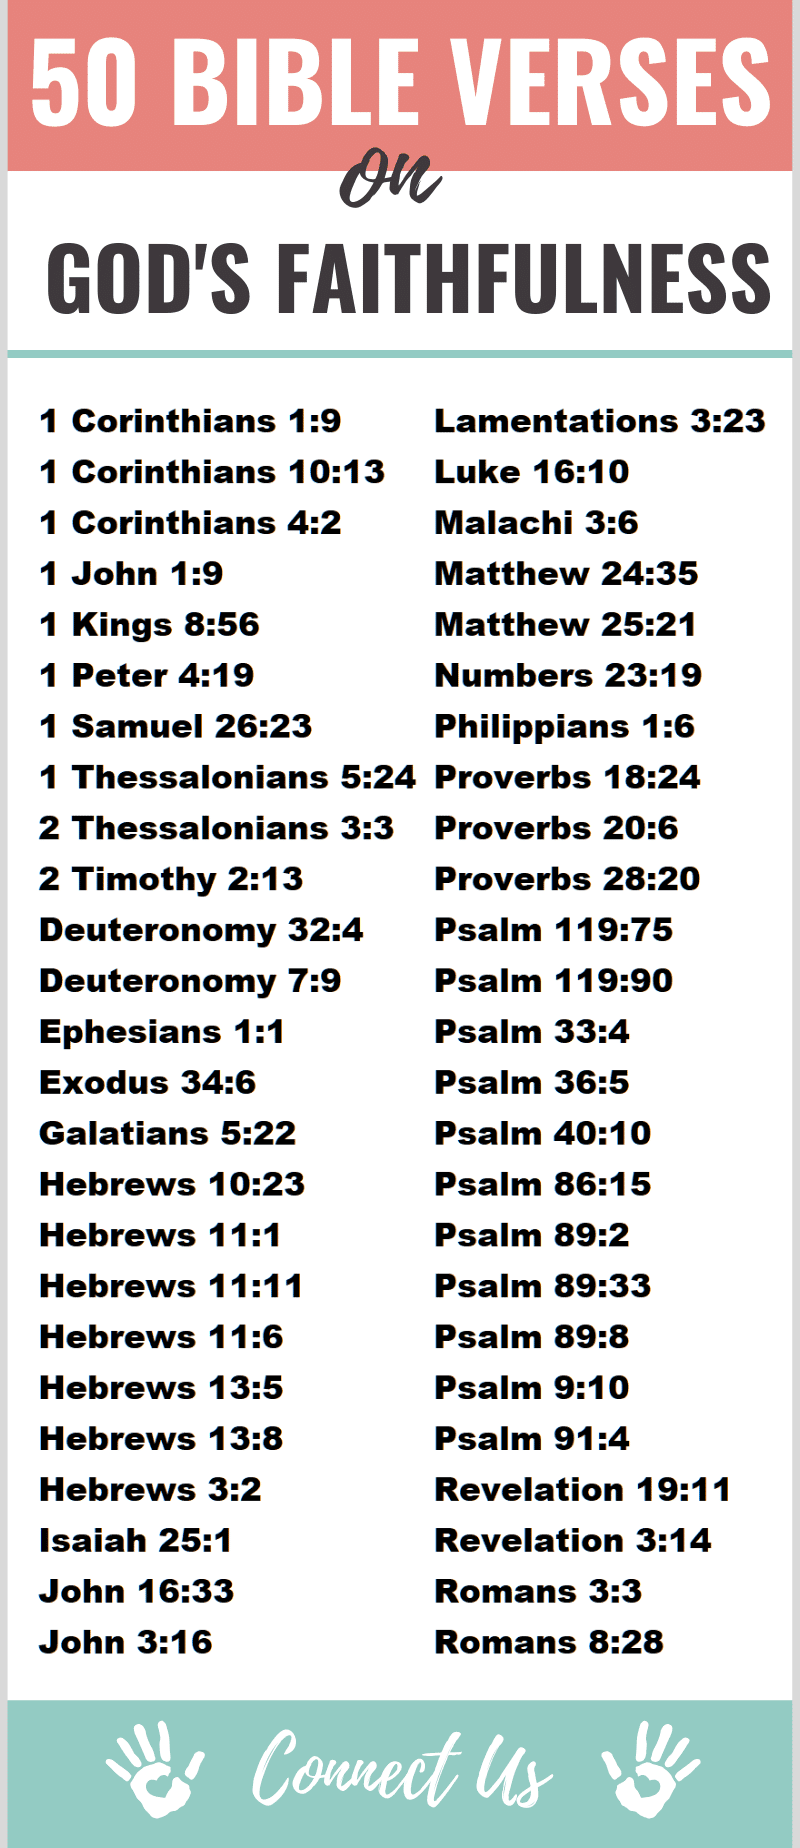 Bible Verses on God's Faithfulness